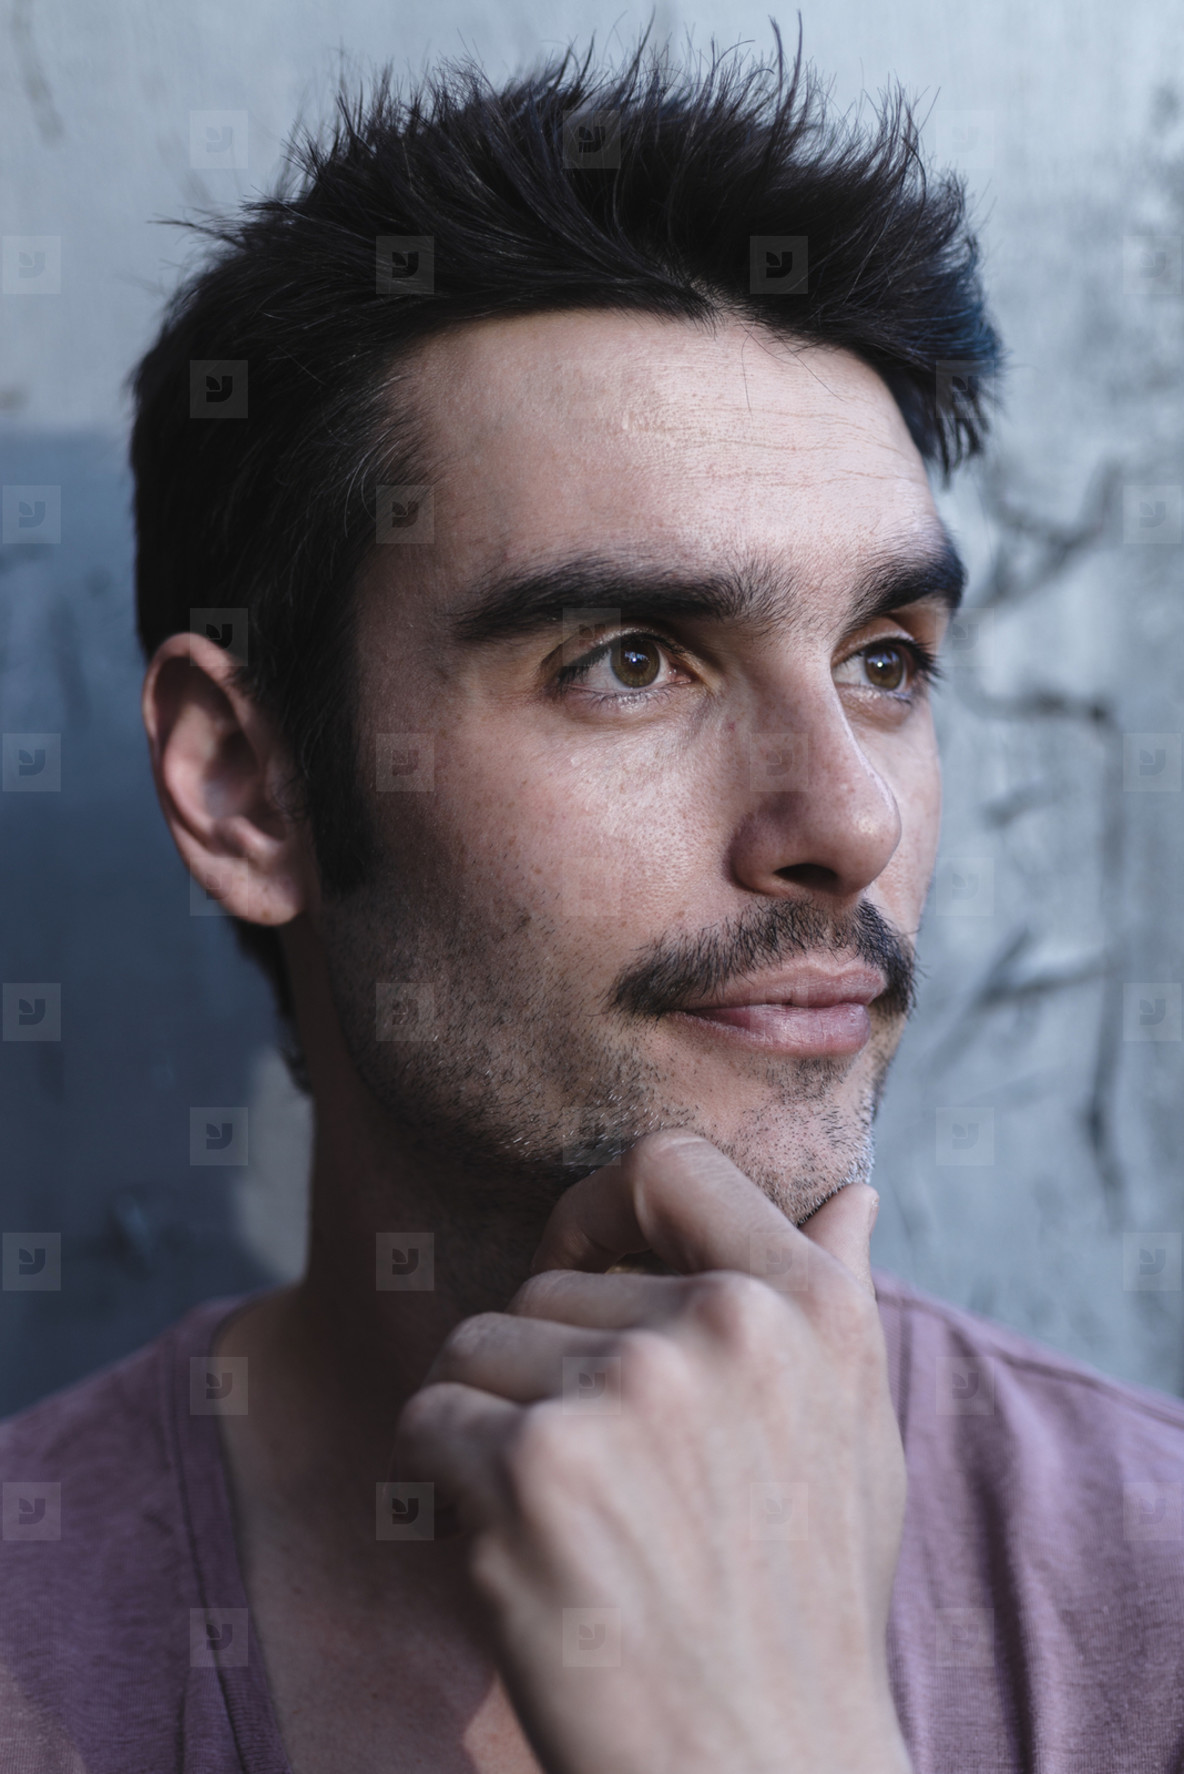 Headshot of middle aged bearded man looking pensively away in su